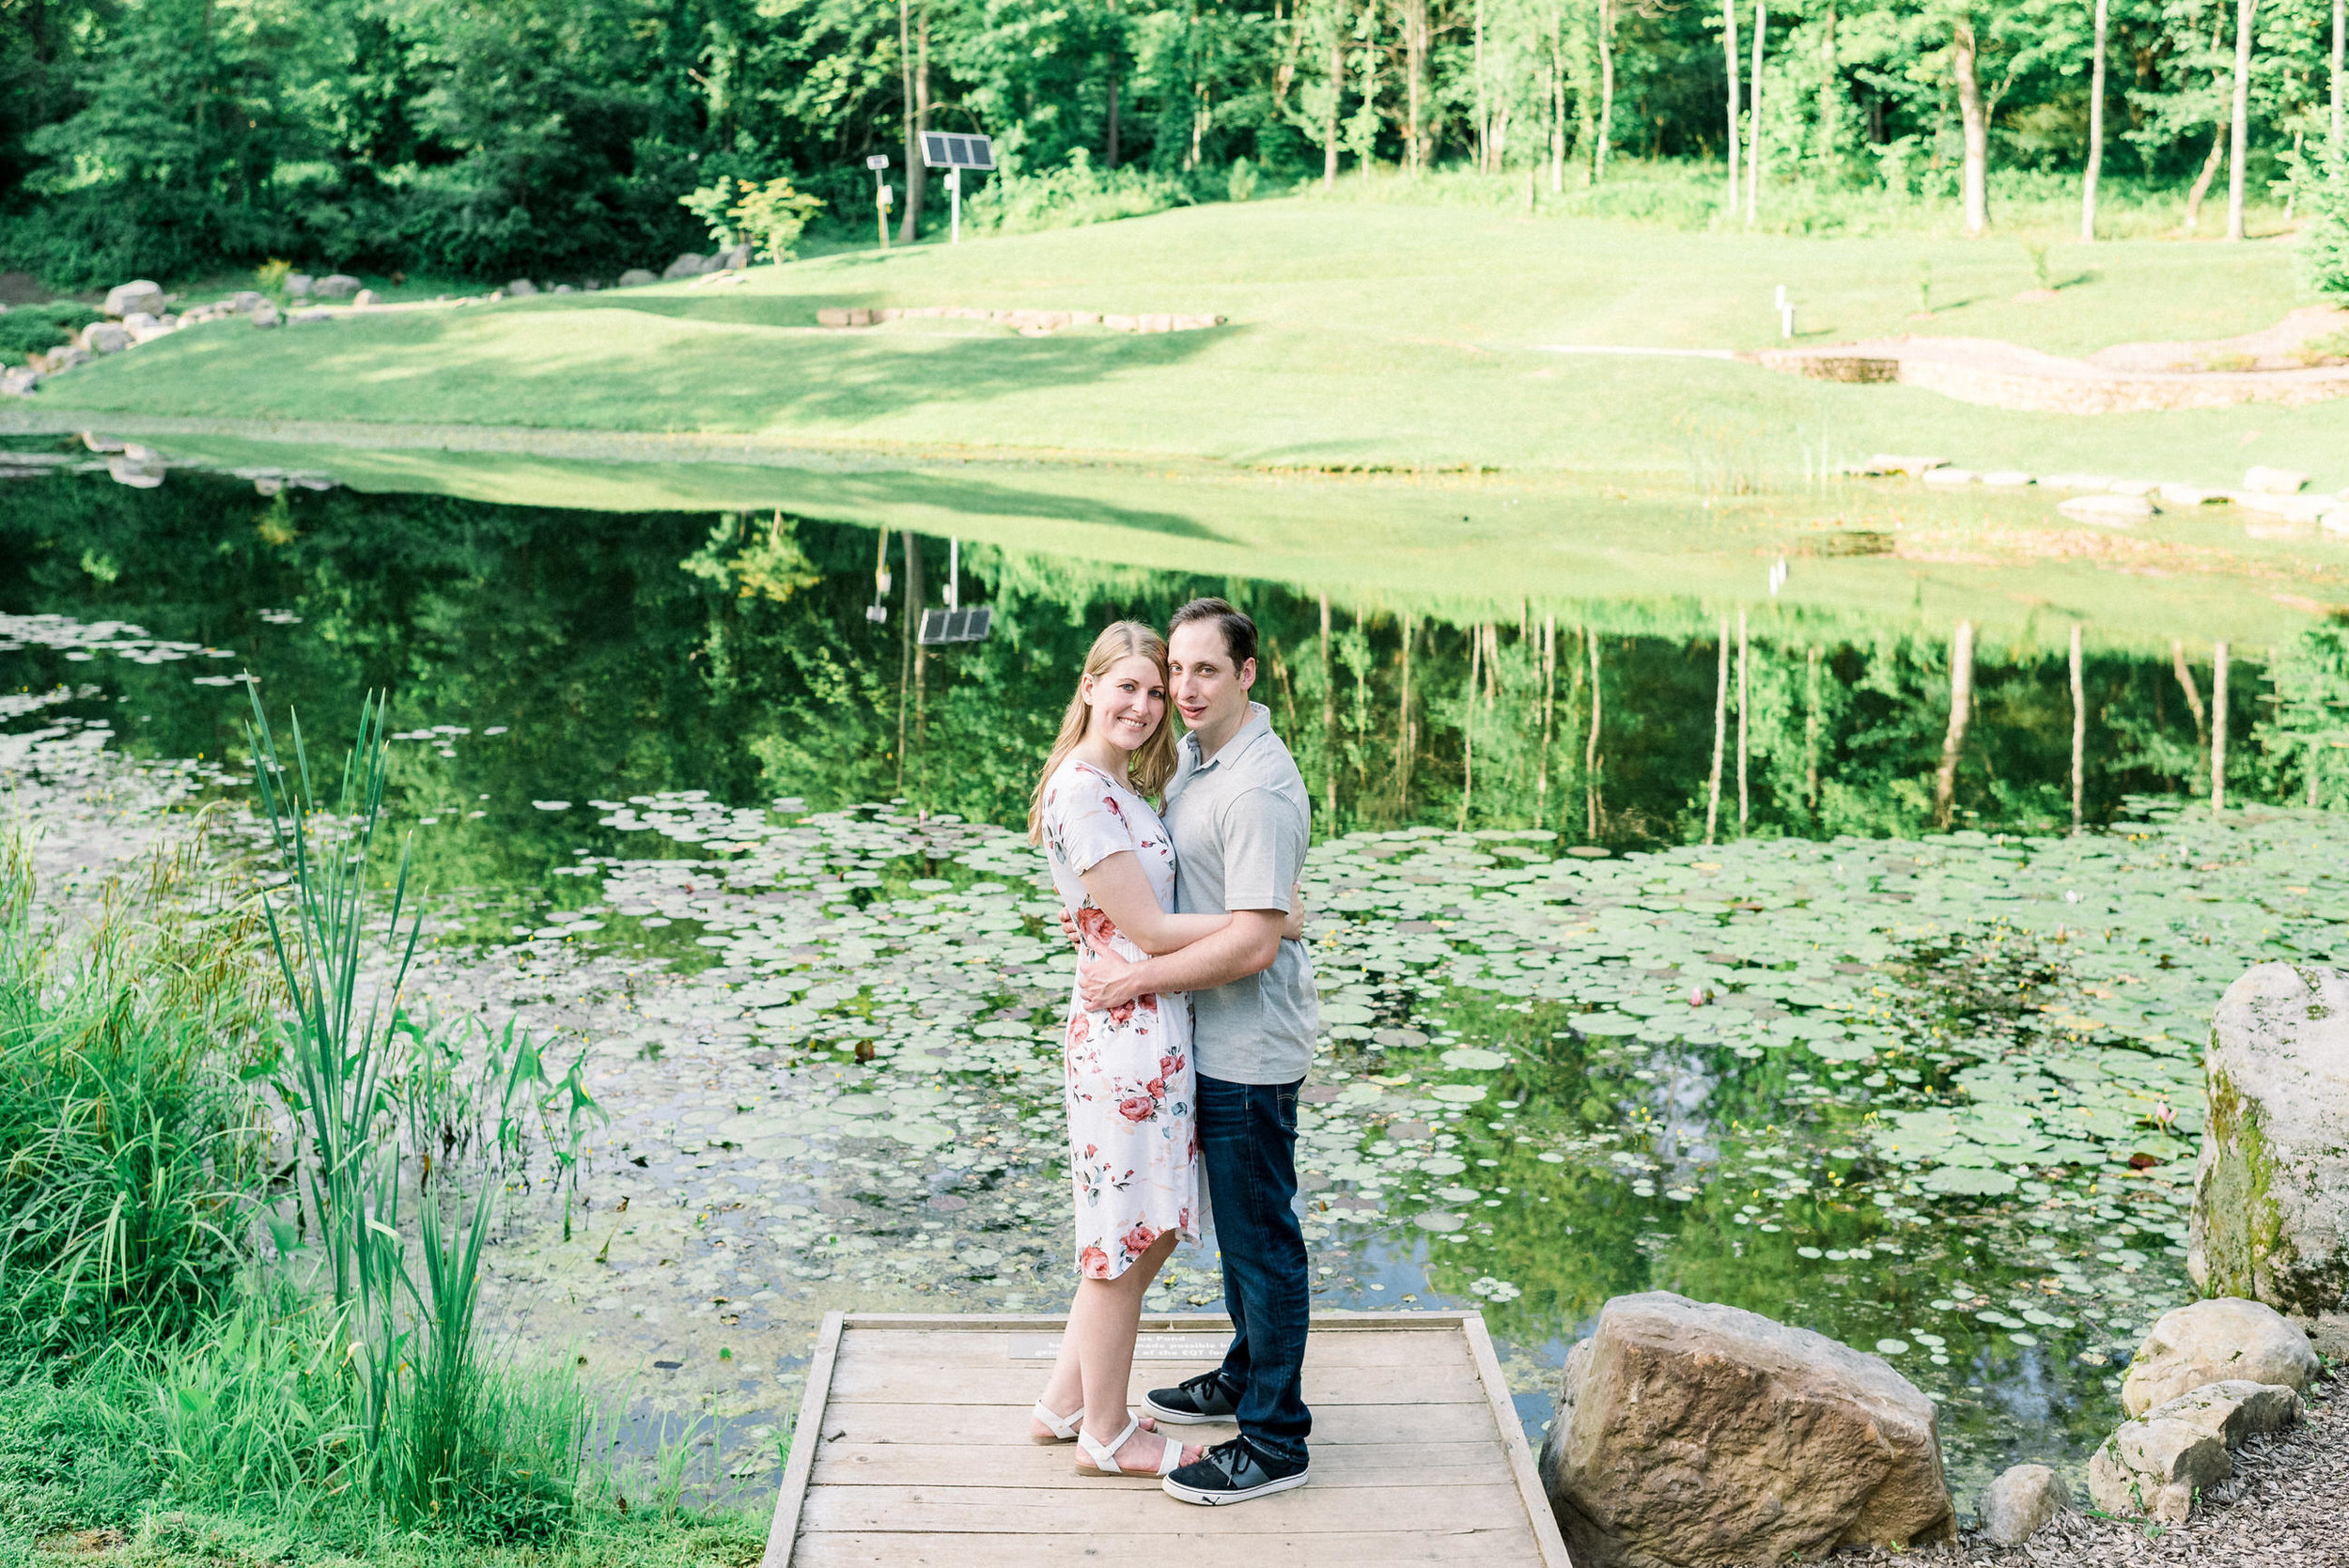 Pittsburgh-botanic-garden-engagement-session-ashley-reed-photography14.jpg